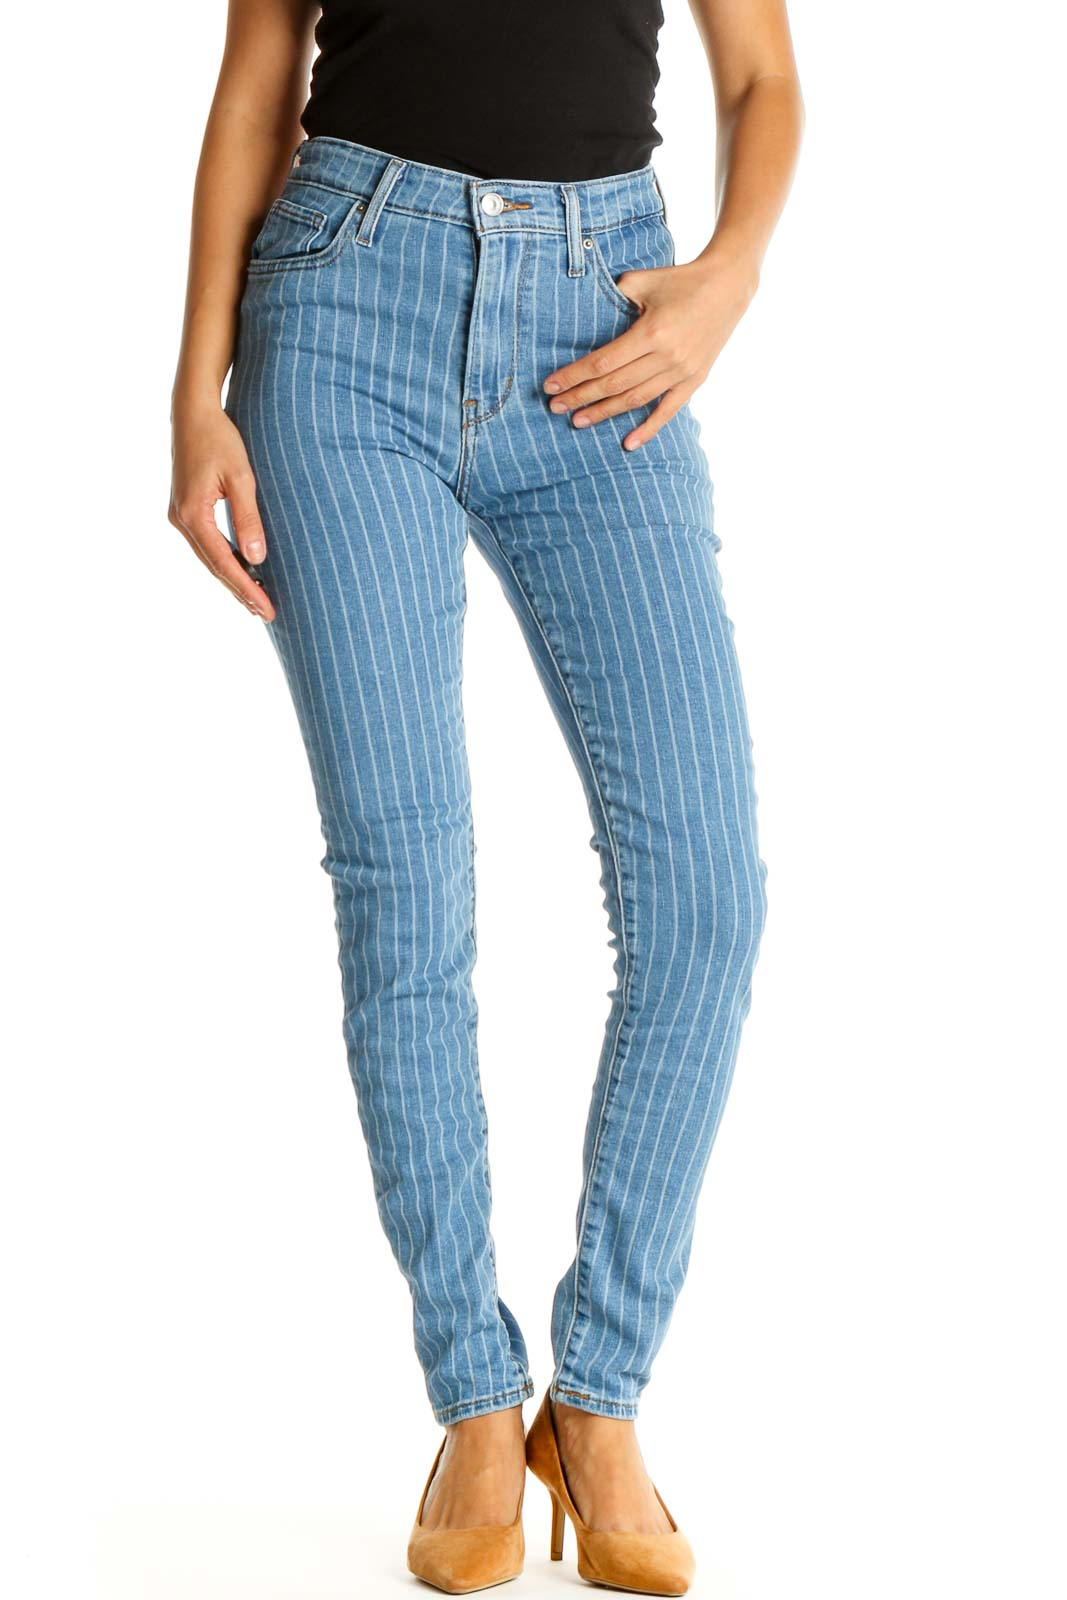 Blue Striped High-Waisted Skinny Jeans Front